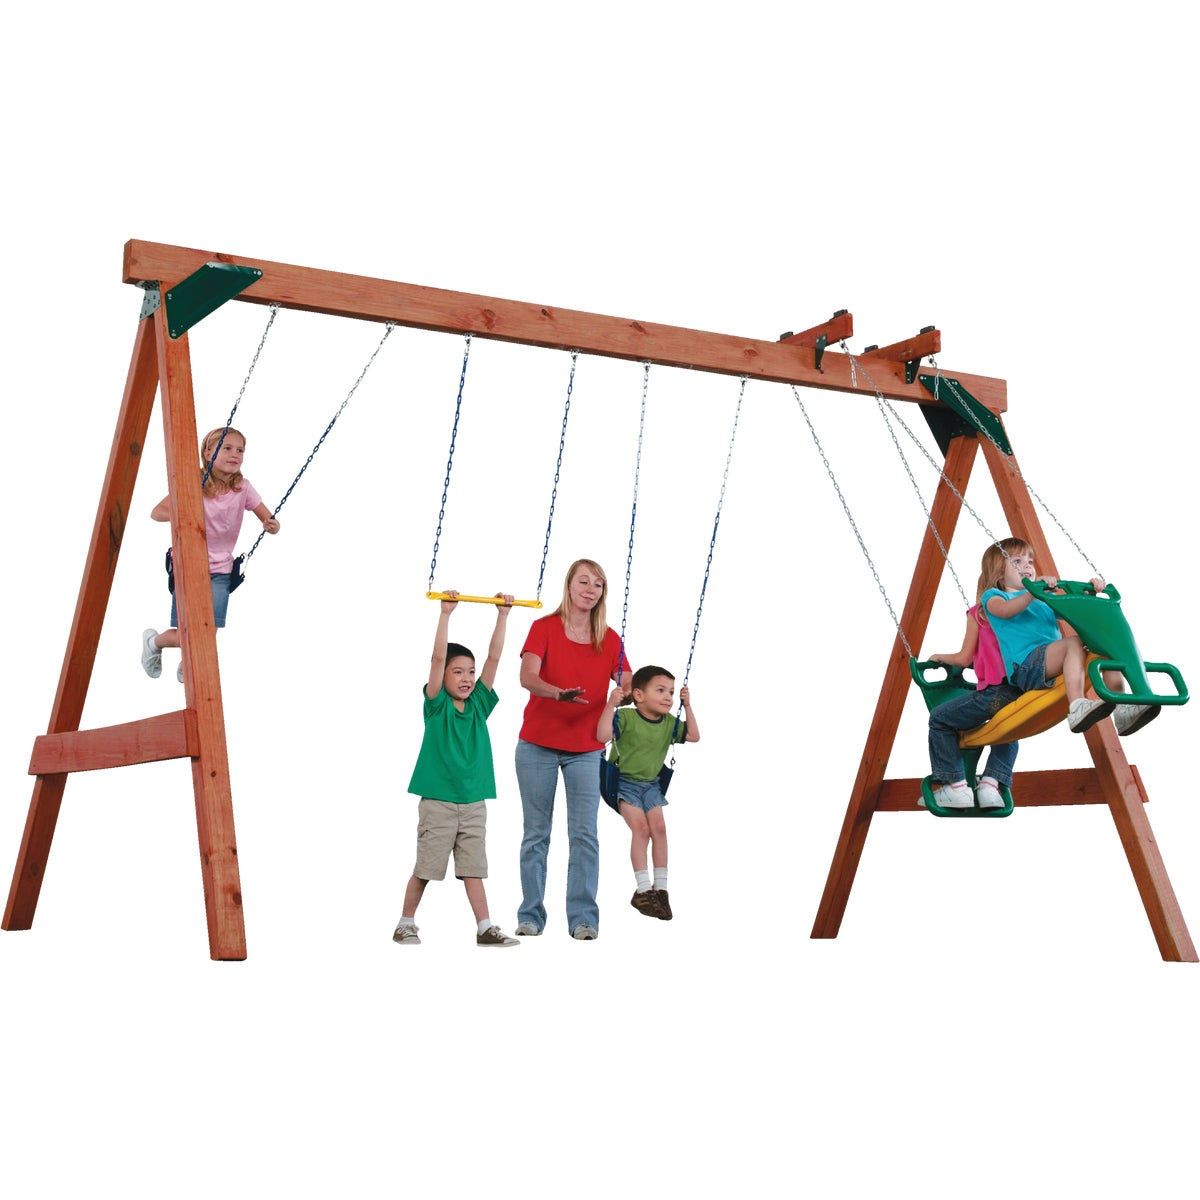 SCOUT SWING SET KIT - NE4422 by Swing N Slide Corp